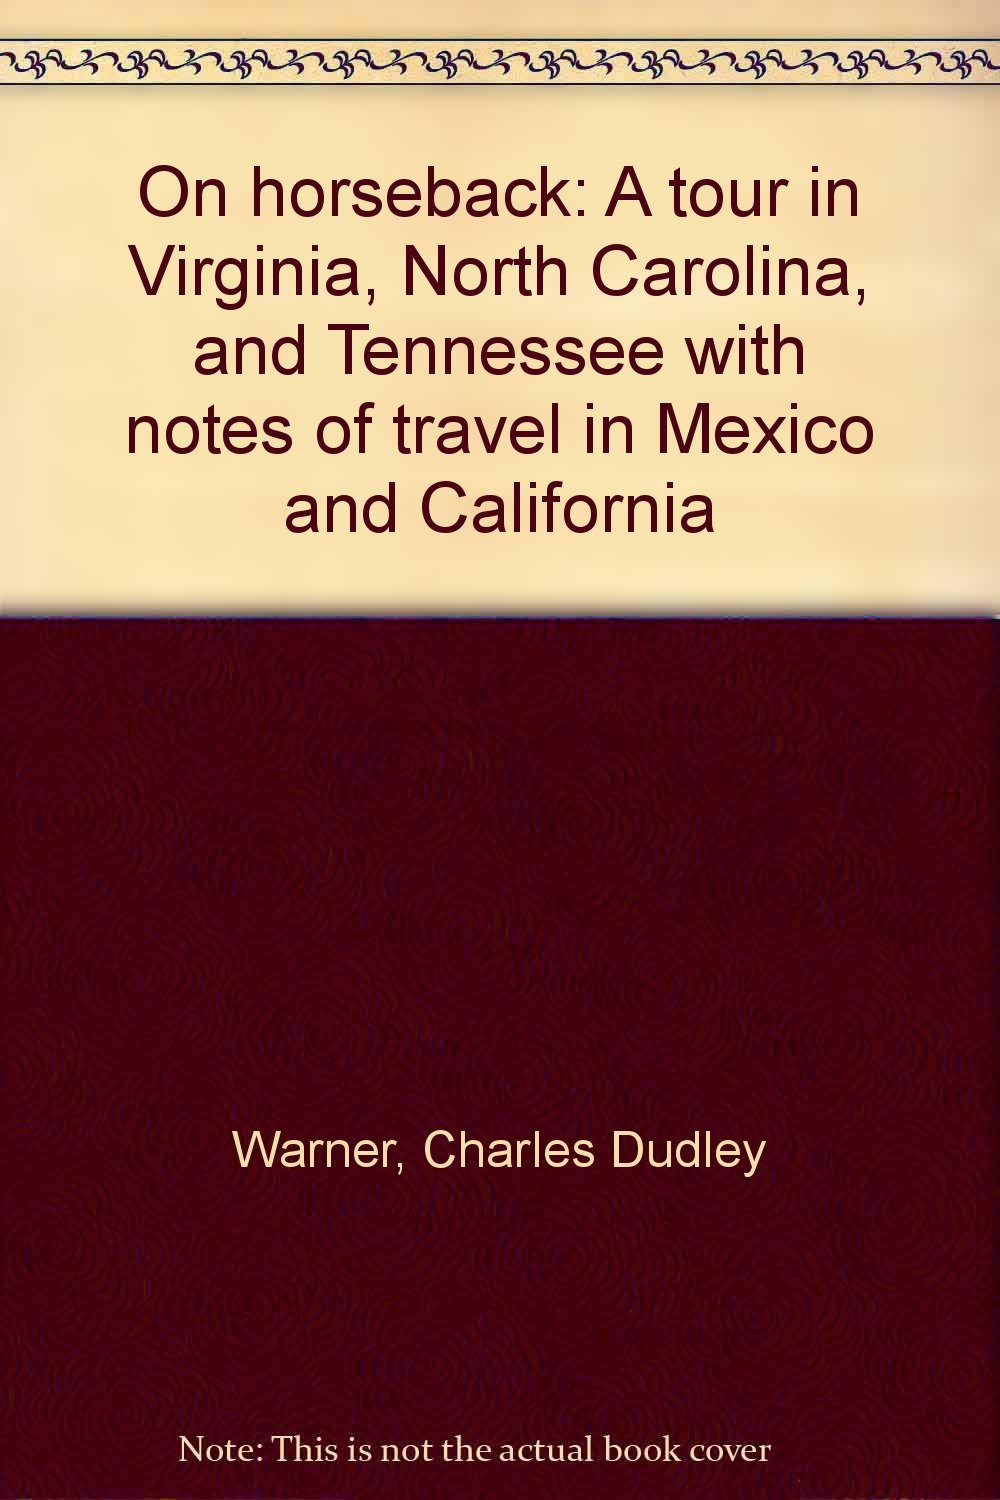 On horseback: A tour in Virginia, North Carolina, and Tennessee with notes of travel in Mexico and California